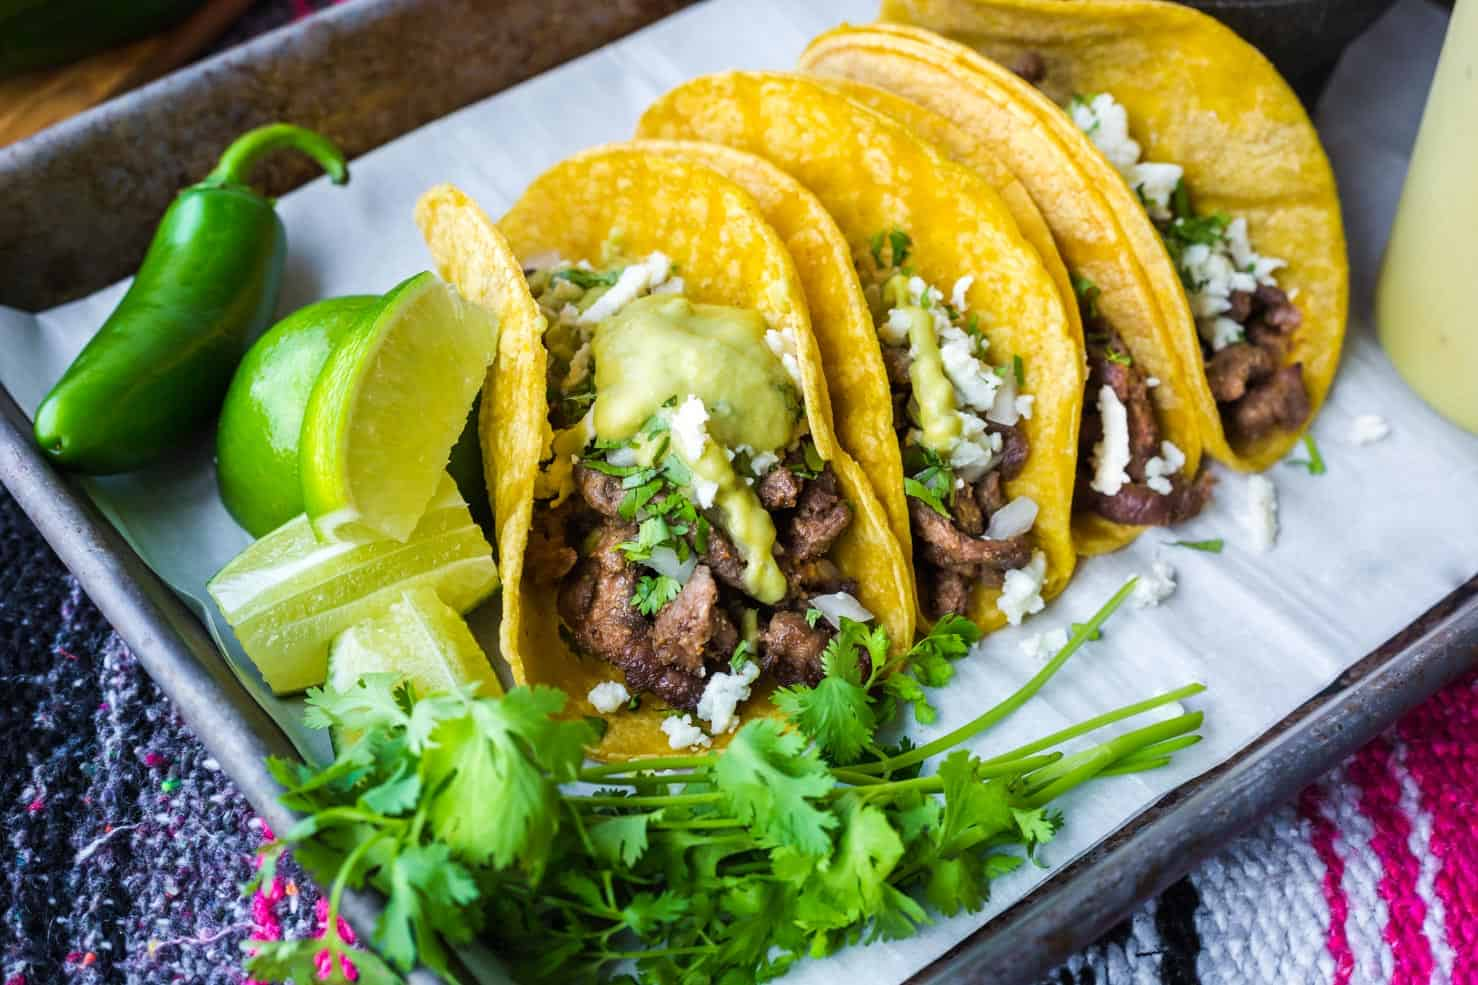 A pan of steak street tacos covered in a creamy jalapeno sauce